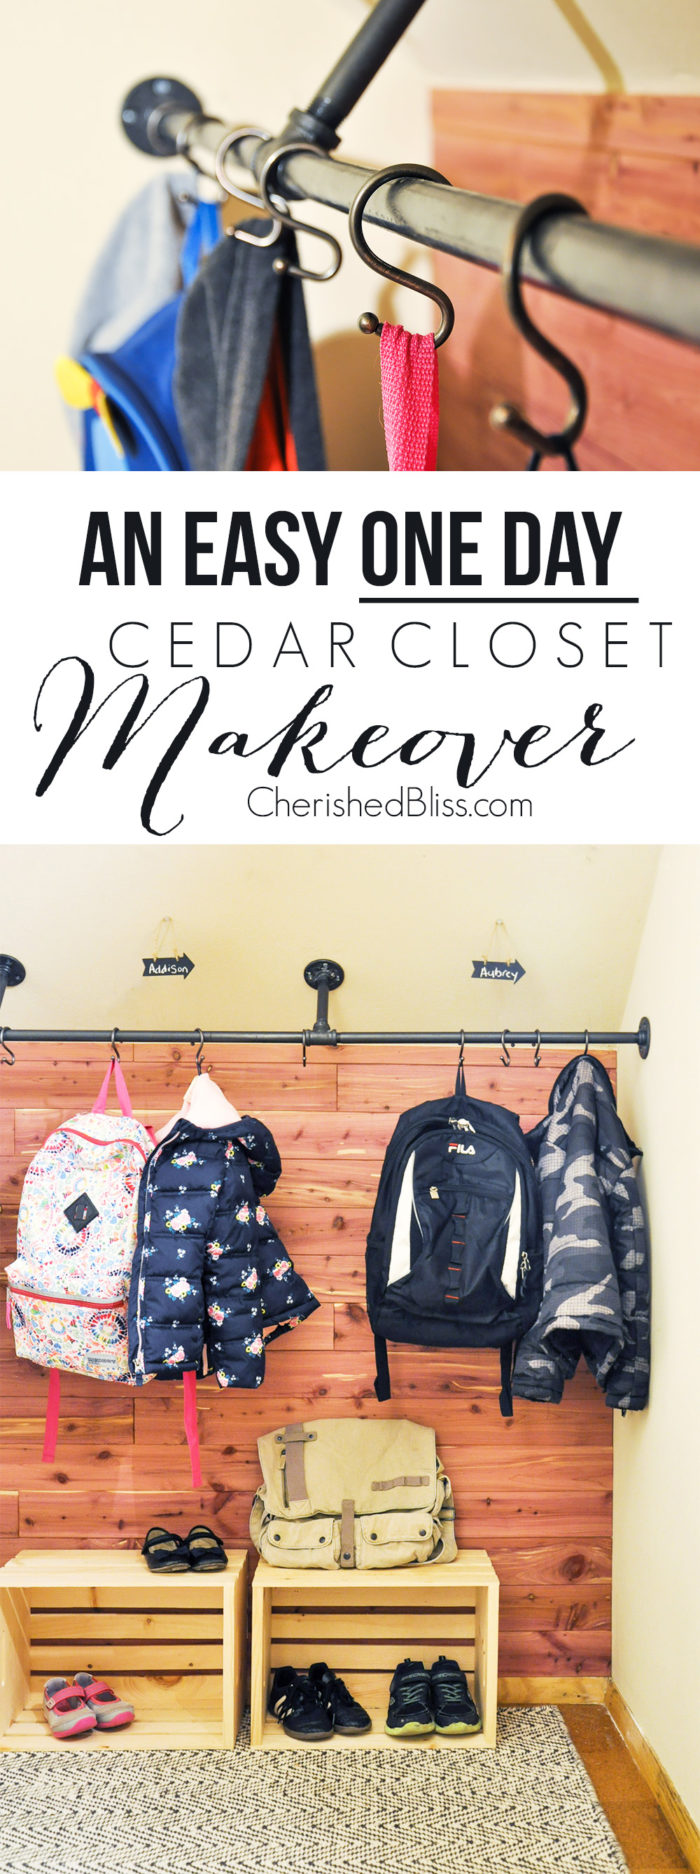 Easy One Day DIY Cedar Closet Makeover. With these simple tips you can create a gorgeous closet for storage with all the benefits of Cedar!